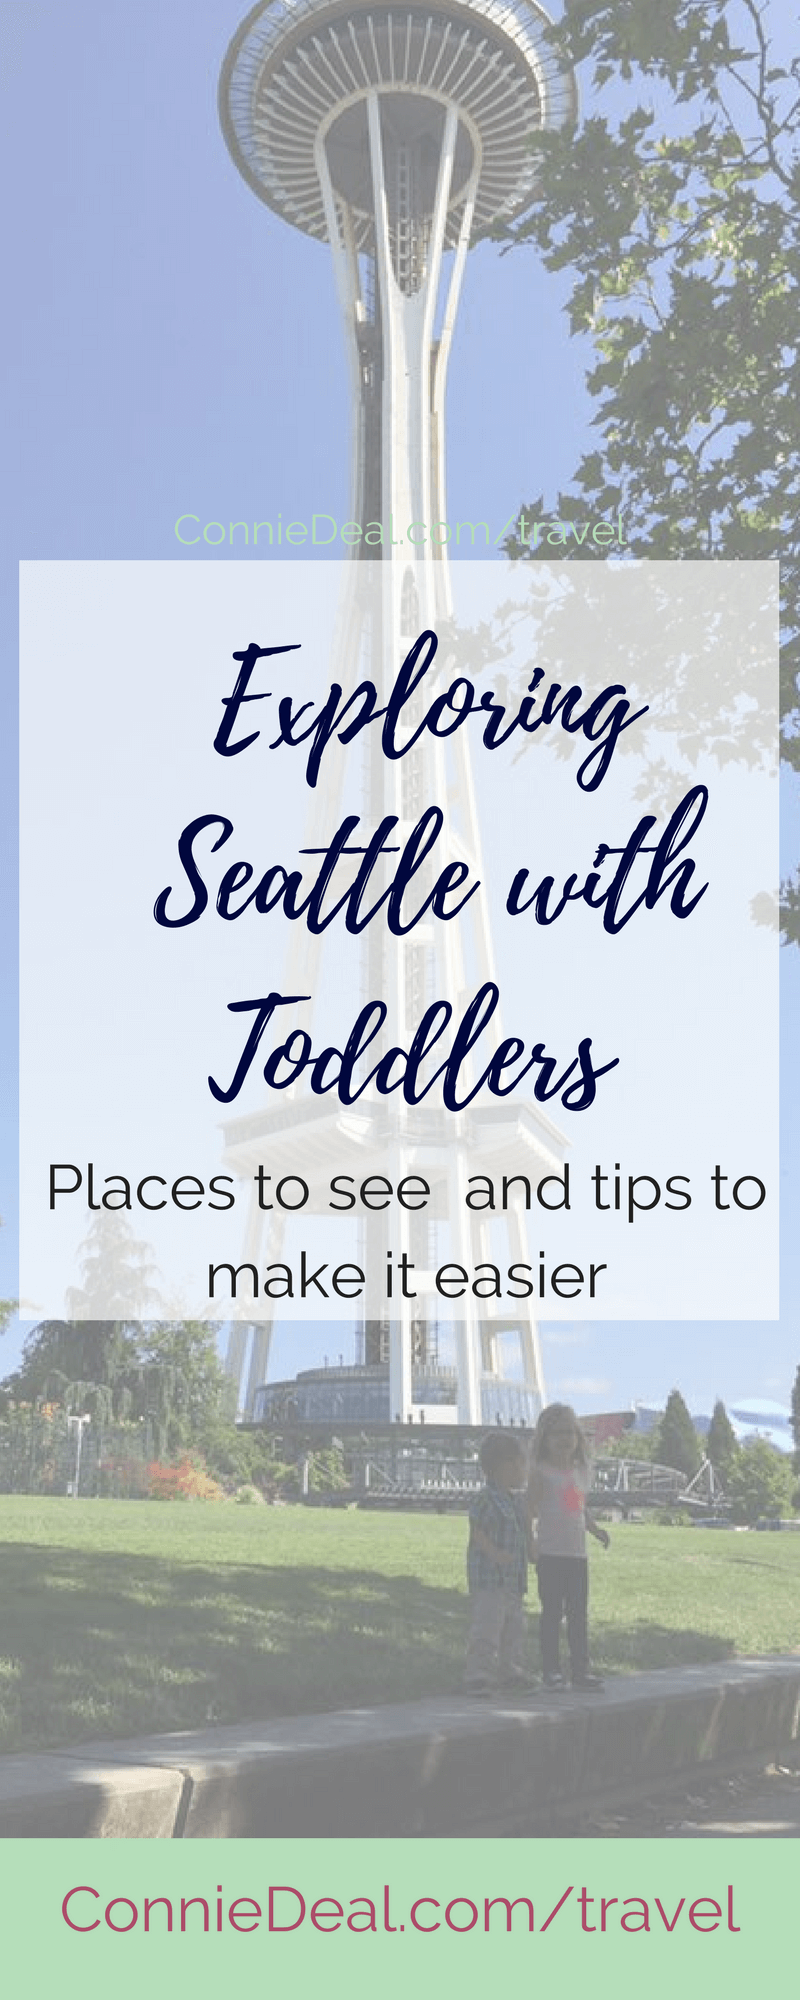 Thinking of visiting Seattle with kids? Is it doable? What are your best options? Find out in this post from a traveling mama with two toddlers! #Seattle #Seattlewithkids #sightseeing #travel #familyvacation